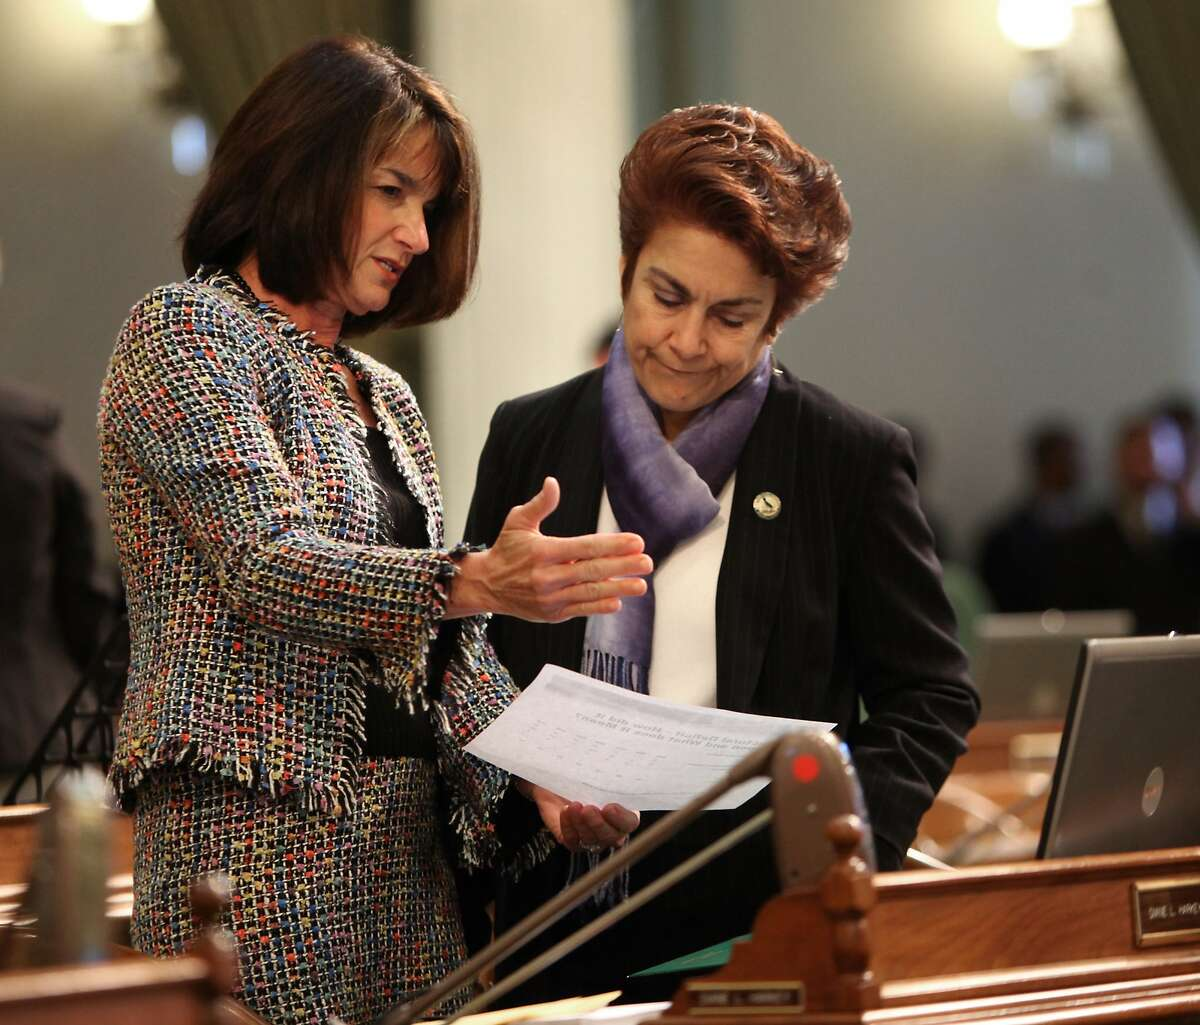 Assemblywoman Diane Harkey, R-Dana Point left, and Assemblywoman Anna Caballero, D-Salinas, look over information on the California's structural budget deficit at the Capitol in Sacramento, Calif., Monday, Feb. 22, 2010. Lawmakers in both houses are expected to vote on a Democratic package of bills designed to reduce California's $20 billion budget deficit by $5 billion.